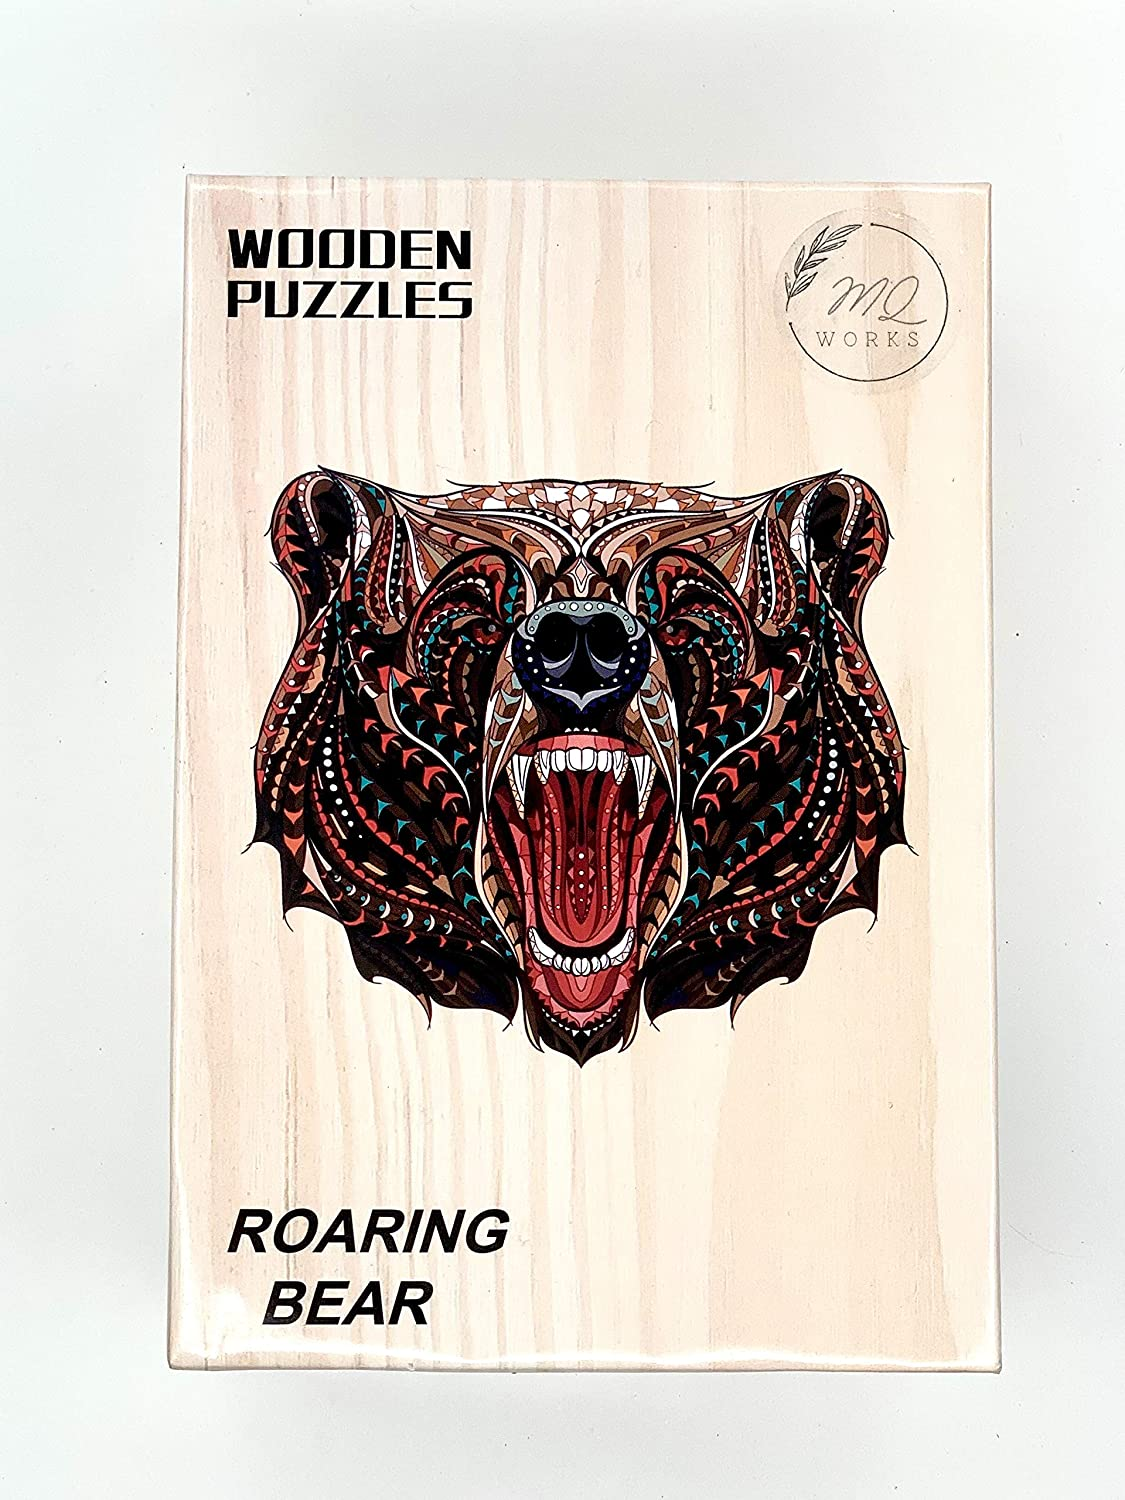 8.3 x 11.7in | Family Puzzle Unique Wooden Jigsaw Puzzle Wooden Puzzles Roaring Bear Medium MQ Works